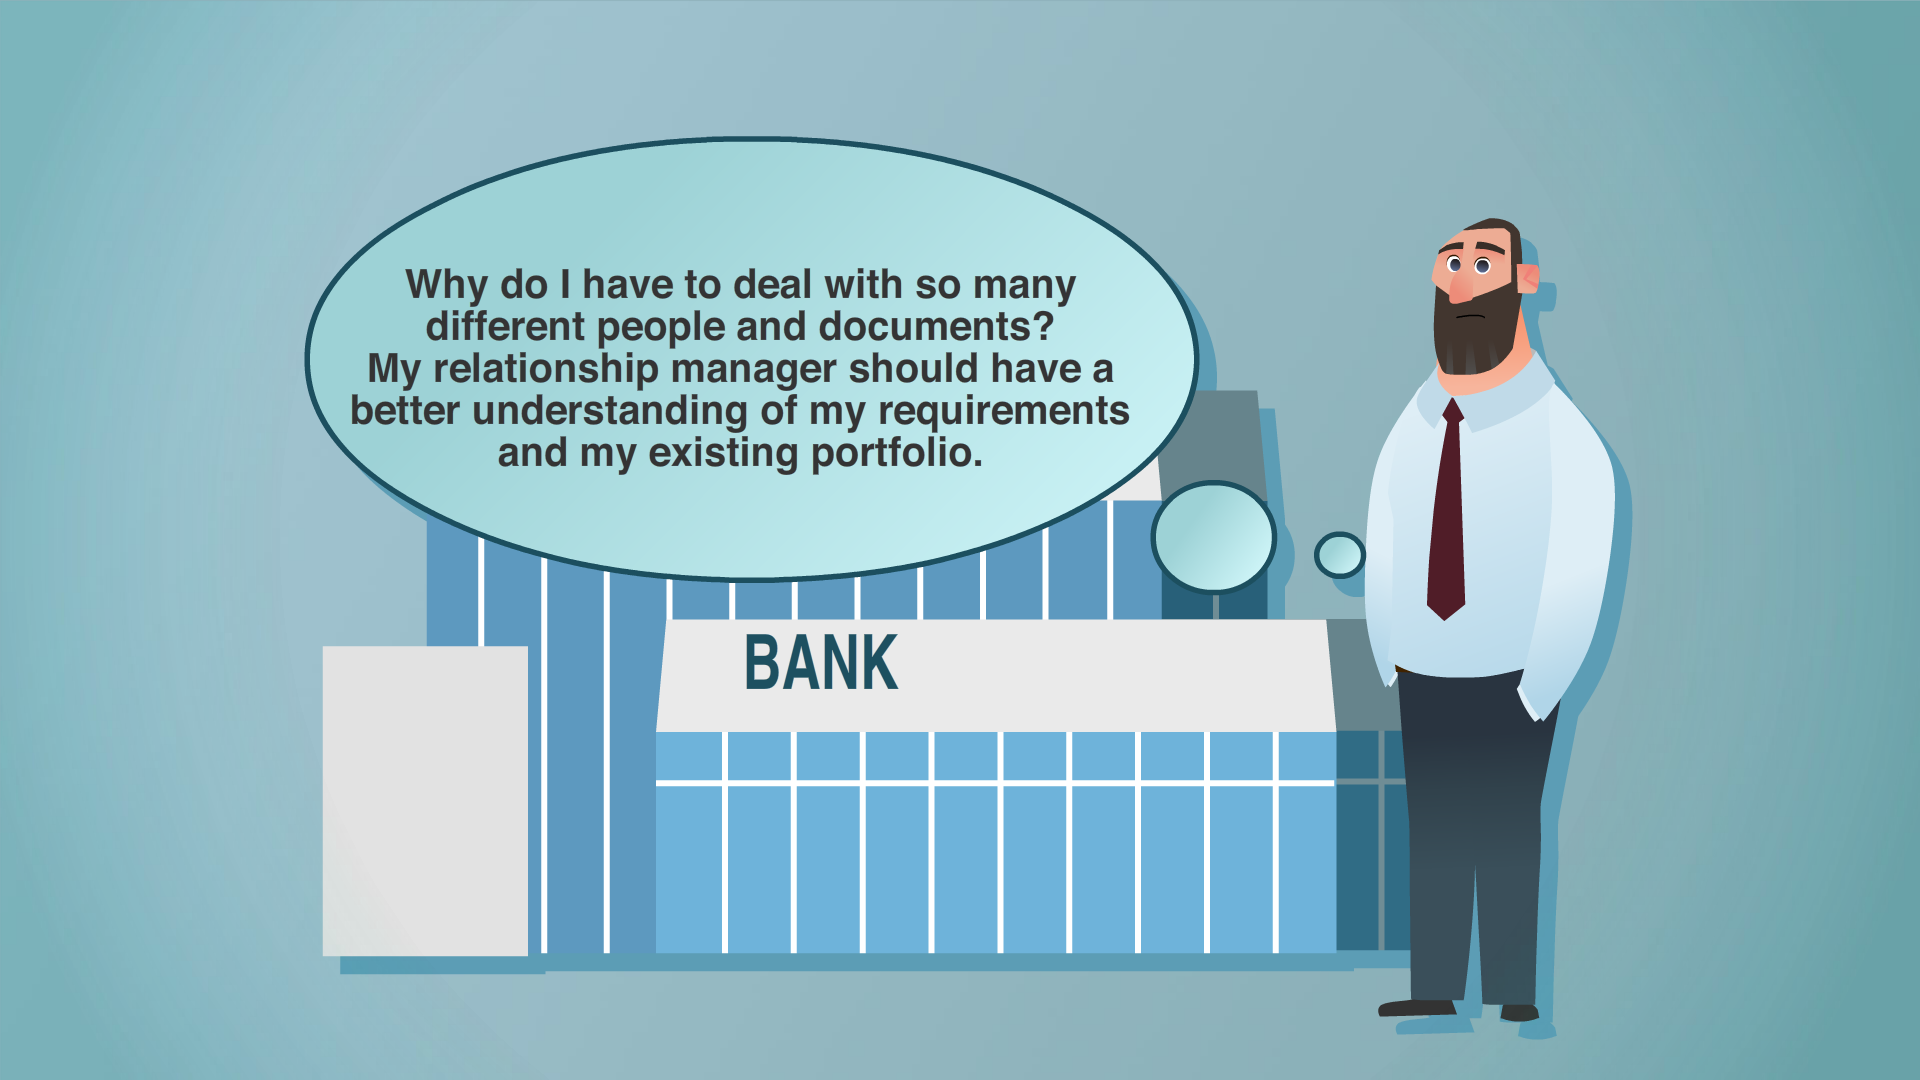 Relationship managers in corporate banks need customer insight